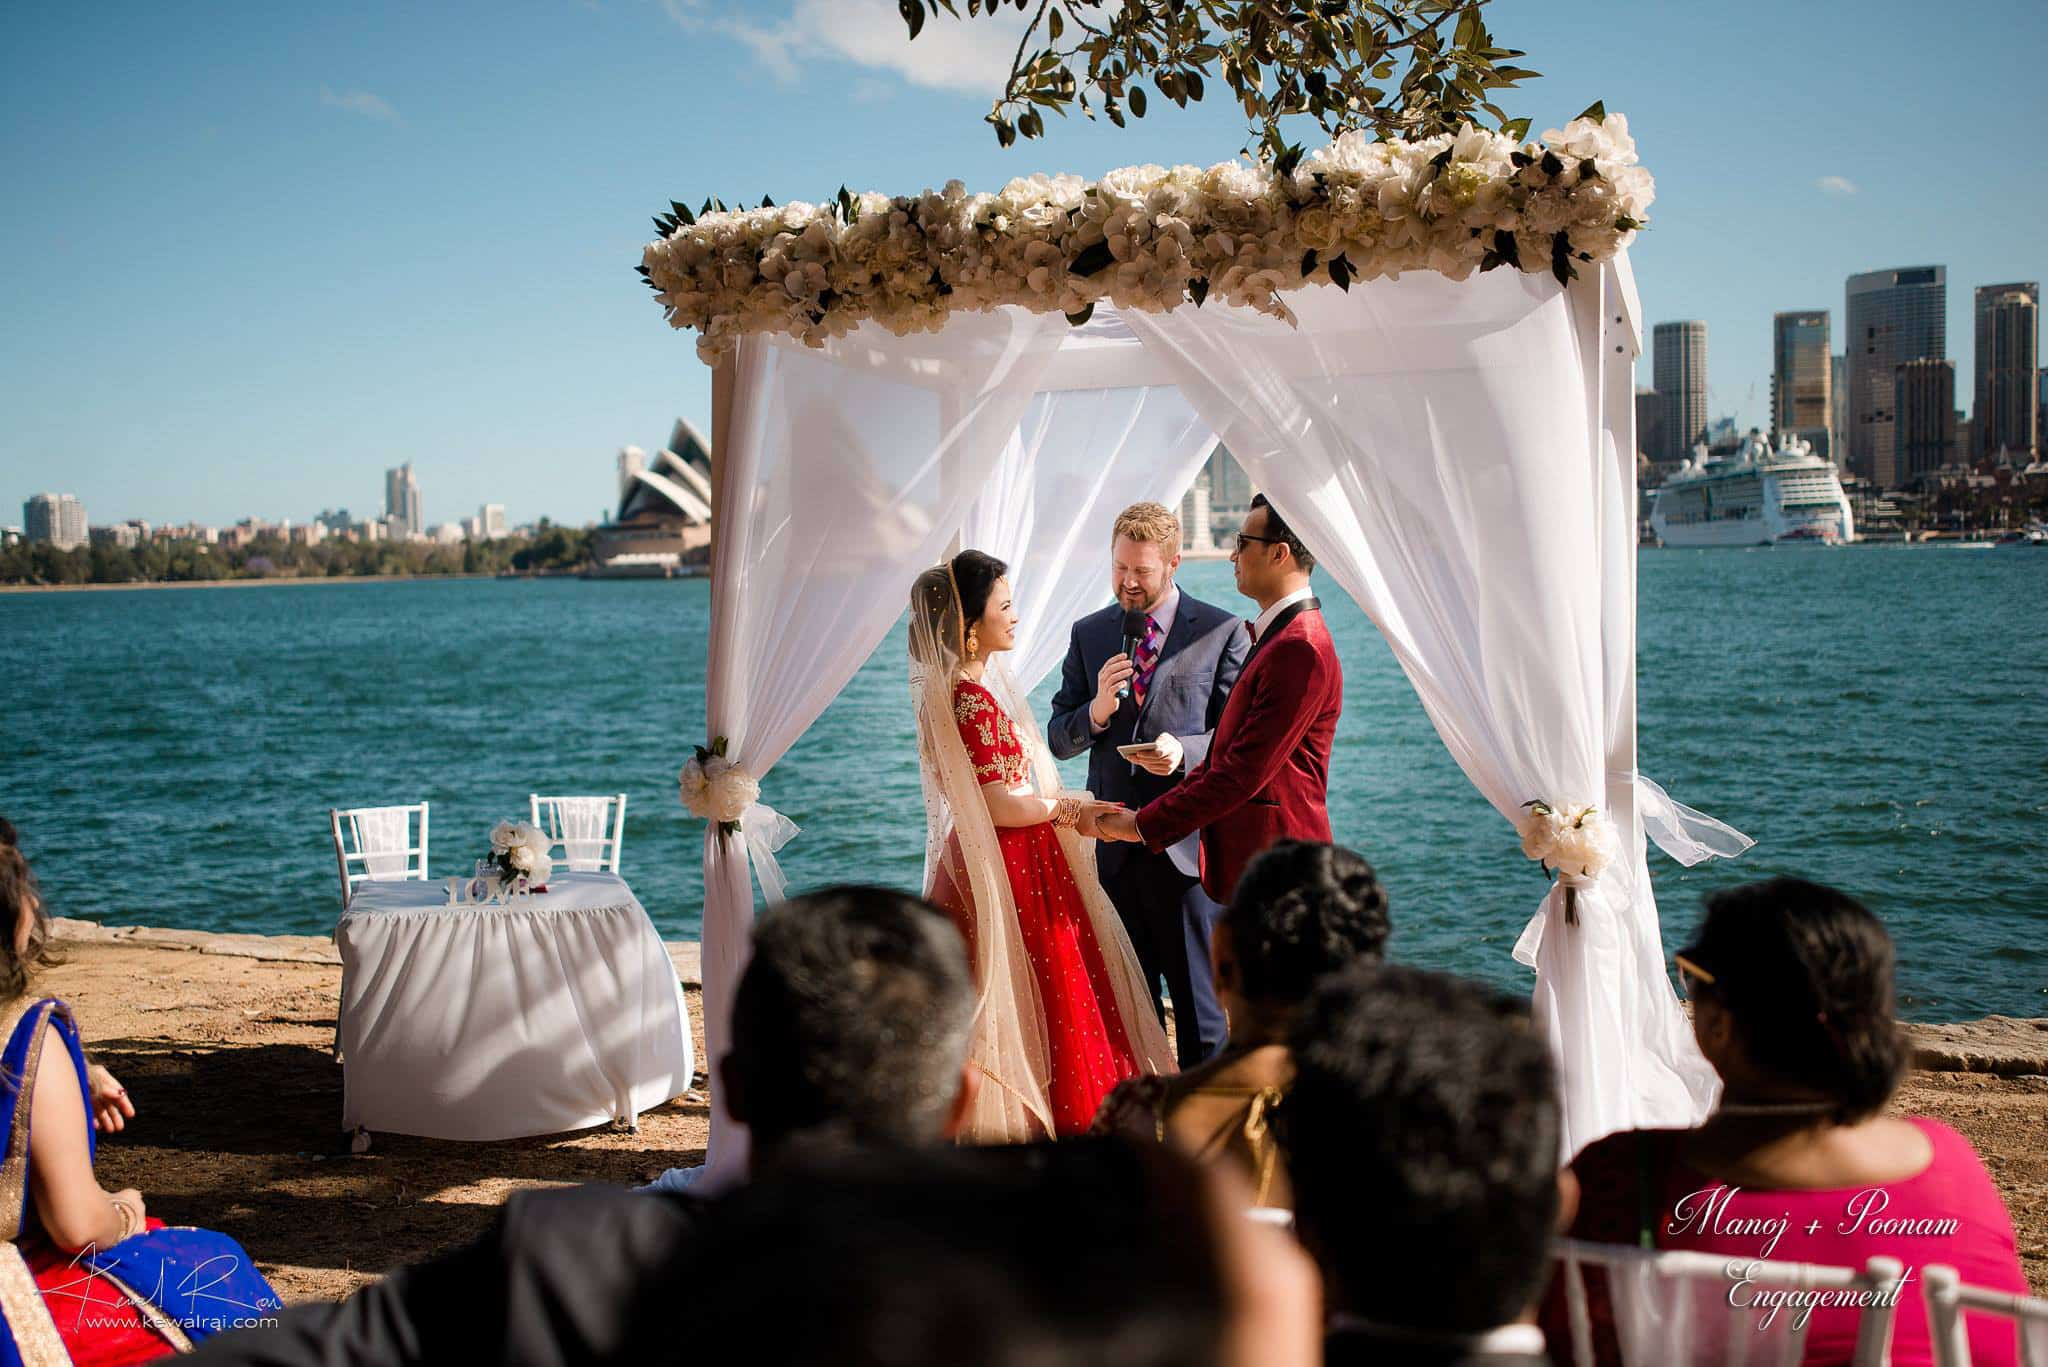 Poonam and Kunwar Sydney Harbour Wedding - Sydney Marriage Celebrant Stephen Lee